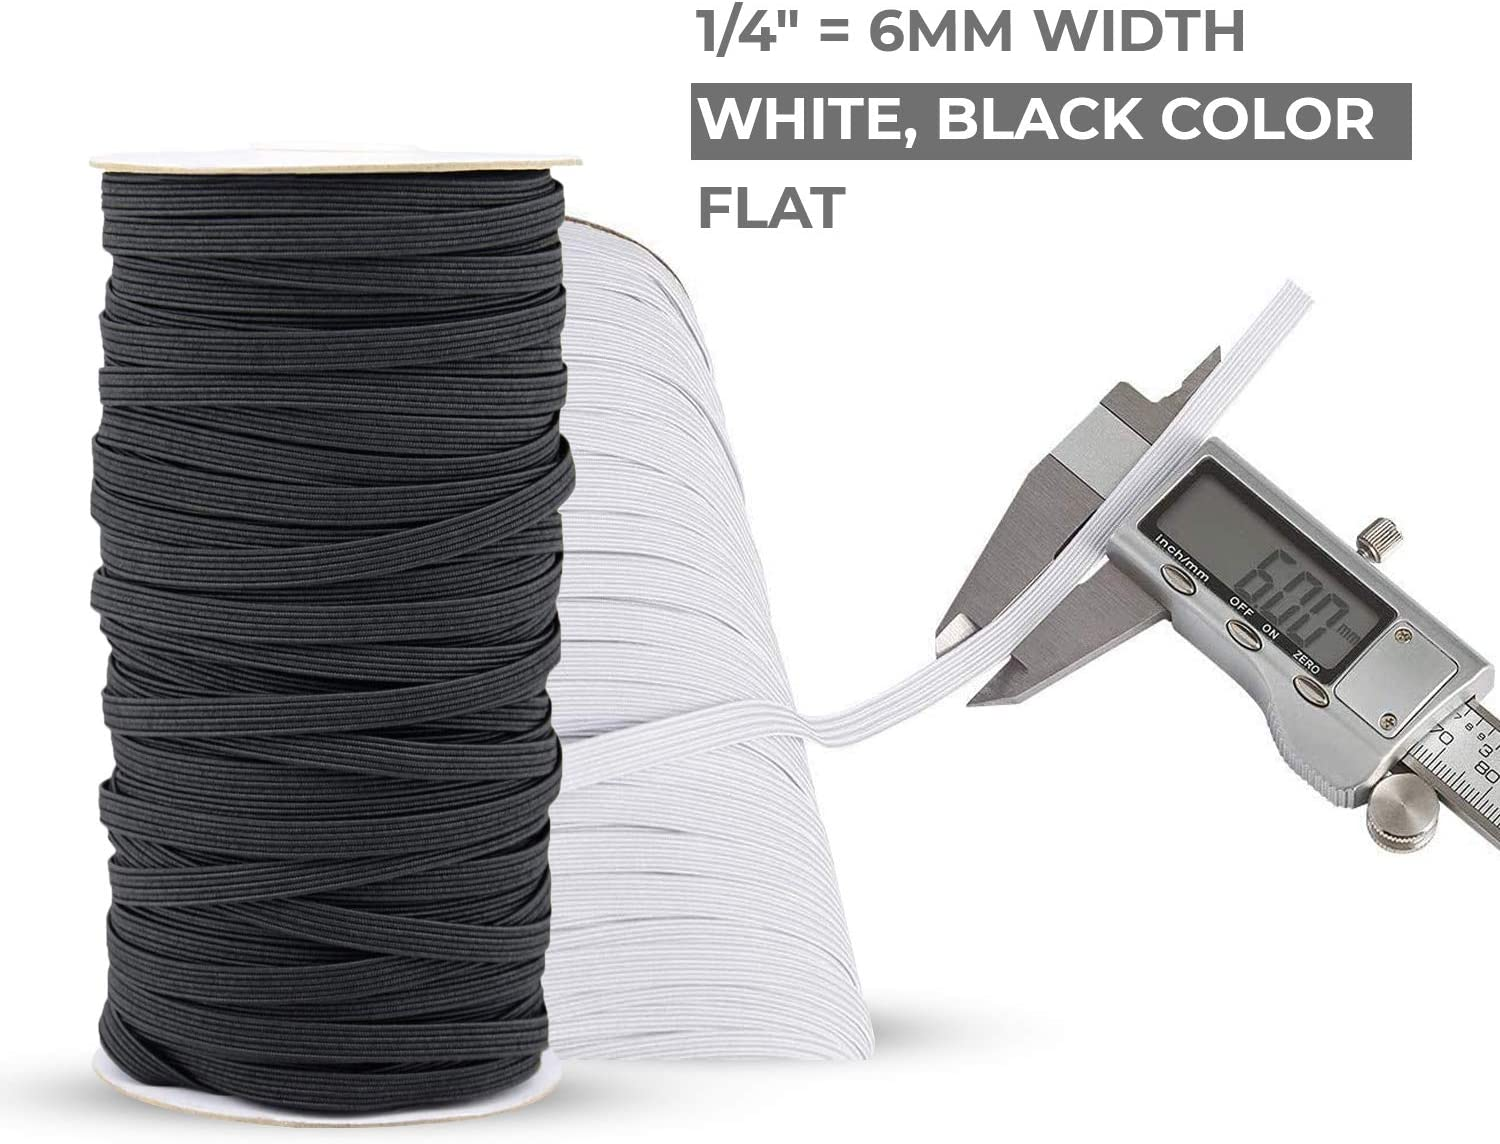 Cord High Elasticity Strap Bungee for Handmade Making Sewing Craft DIY Mask and Bedspread Cuff Braided Elastic Rope 100 Yards Elastic Band for Sewing 1//2 inch Black Flex Fabrics